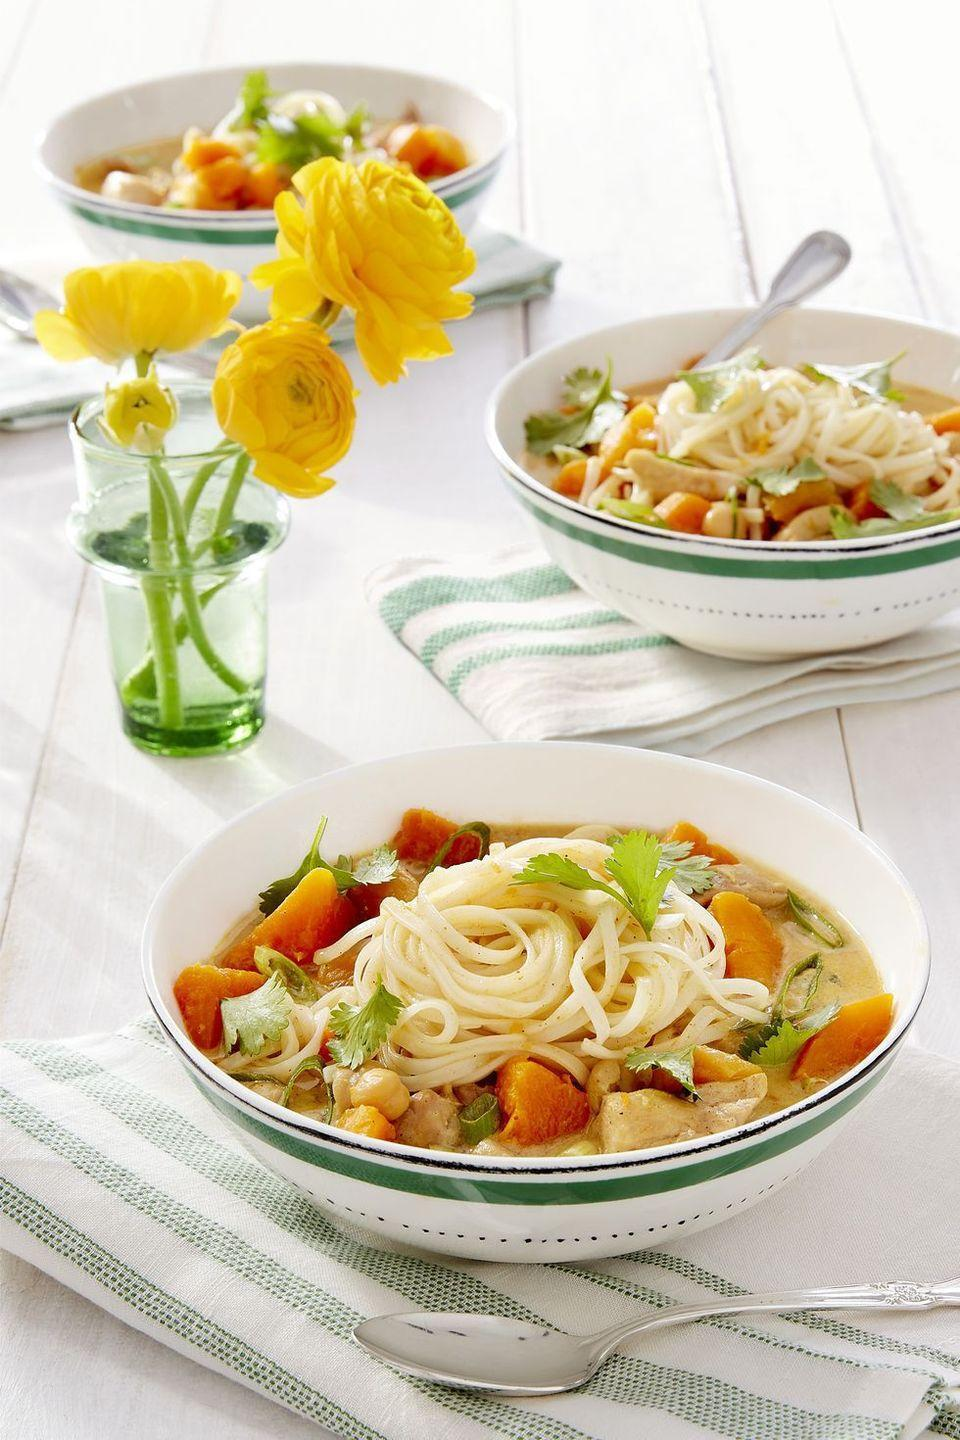 """<p>Instead of peeling and dicing, toss in pre-cut butternut squash for a hassle-free dinner. </p><p><a href=""""https://www.countryliving.com/food-drinks/a16571156/butternut-squash-apricot-chicken-noodle-curry-recipe/"""" rel=""""nofollow noopener"""" target=""""_blank"""" data-ylk=""""slk:Get the recipe from Country Living »"""" class=""""link rapid-noclick-resp""""><em>Get the recipe from Country Living »</em></a><br></p>"""